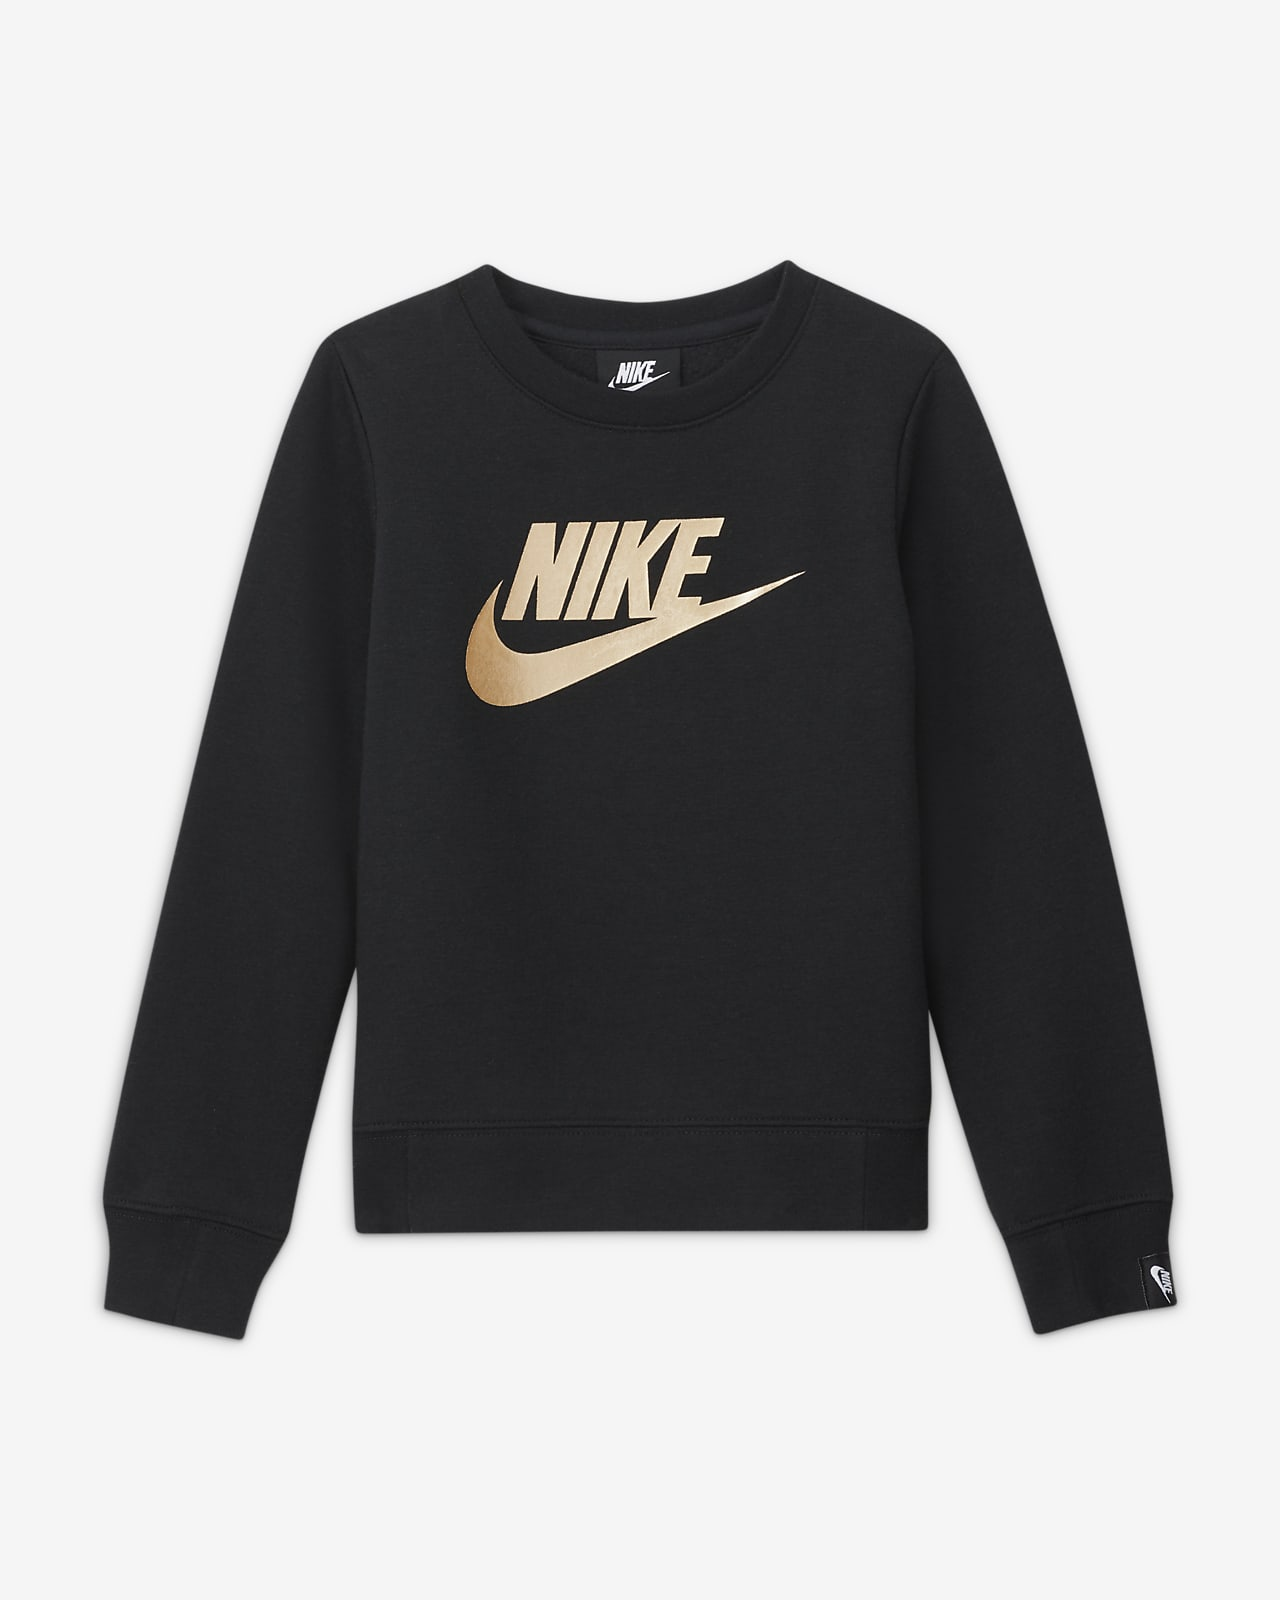 Nike Sportswear Little Kids' Crew